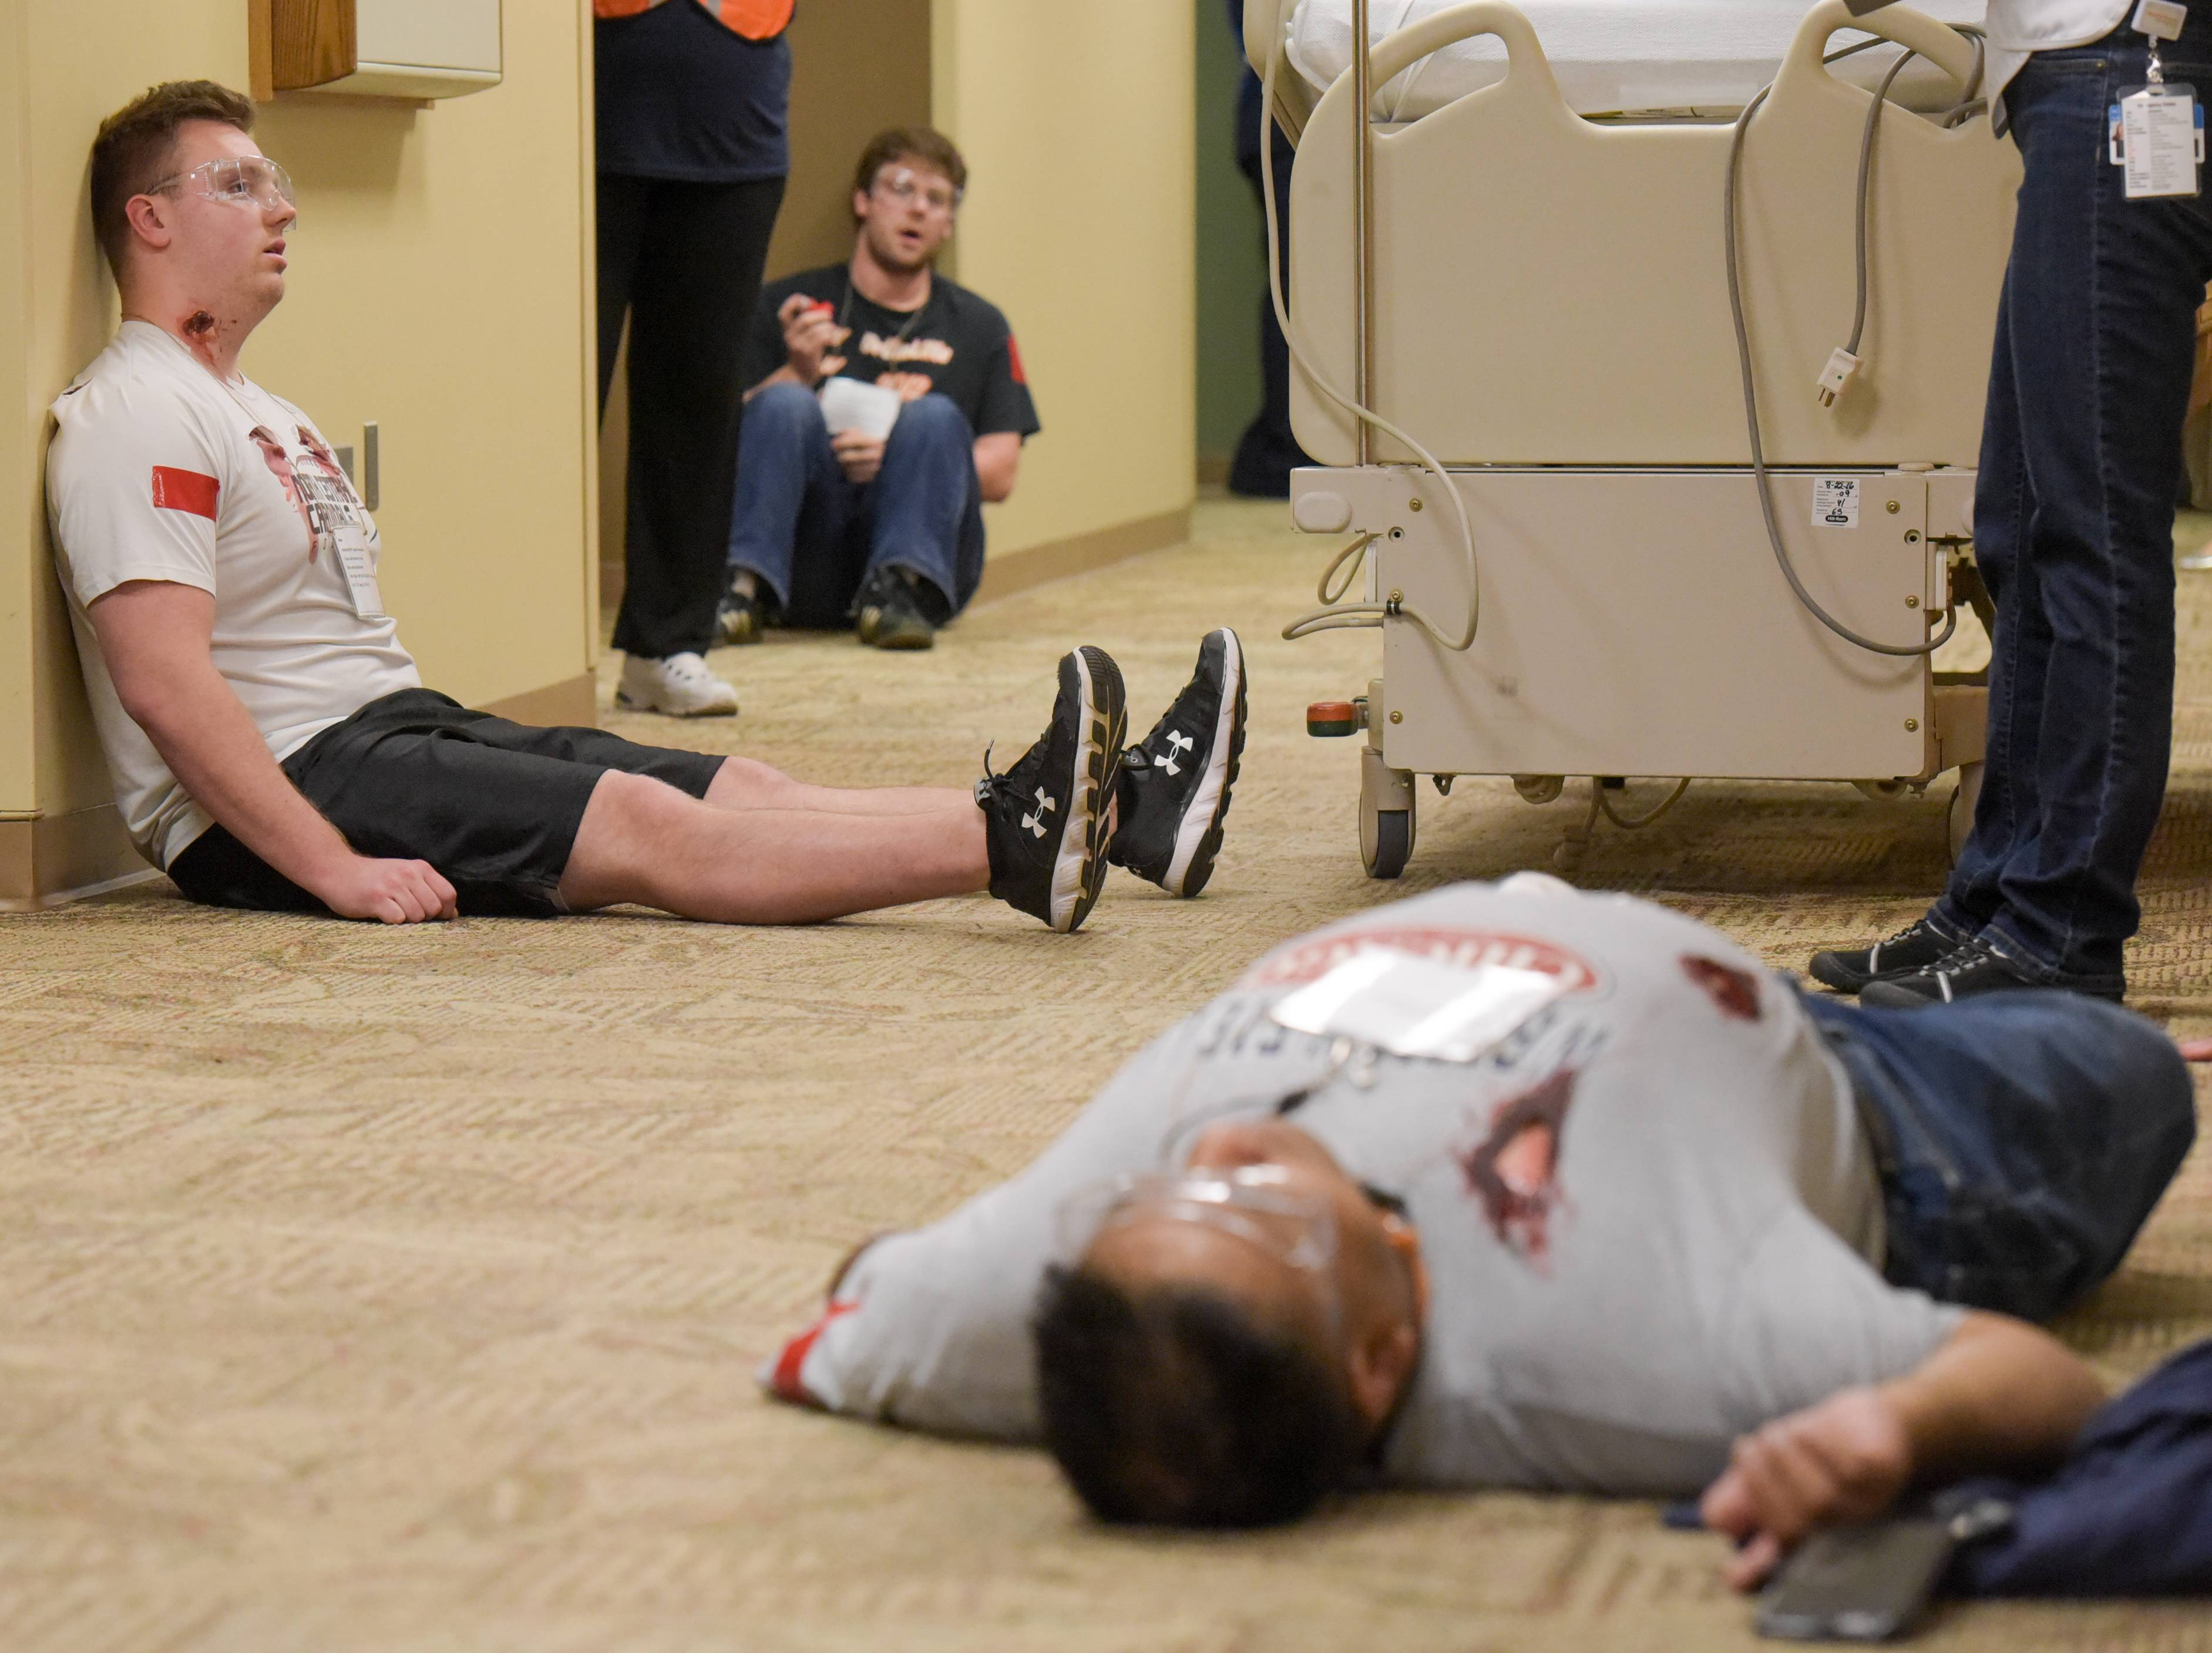 Actors playing victims during an active shooter drill slump across the hallway of a unit on the first floor.